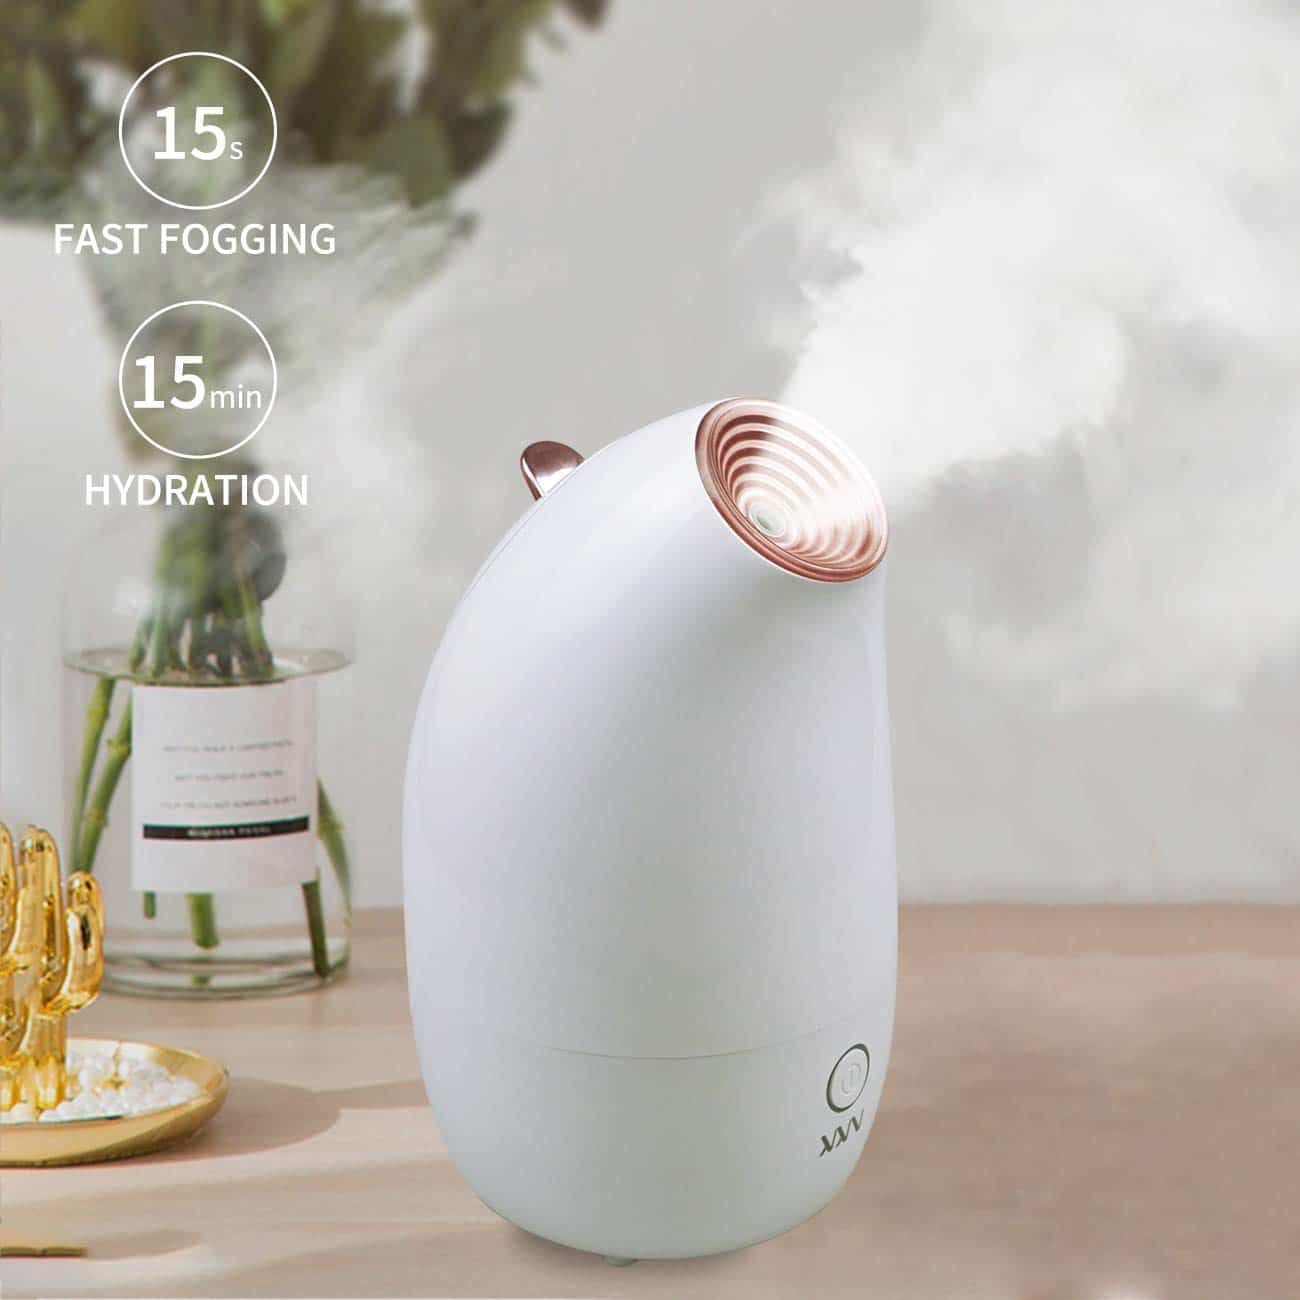 Facial Steamers - VKK Nano Ionic Facial Steamer Warm Face Steamer Mist Humidifier Steamer Home Facial Sauna Spa Humidifier